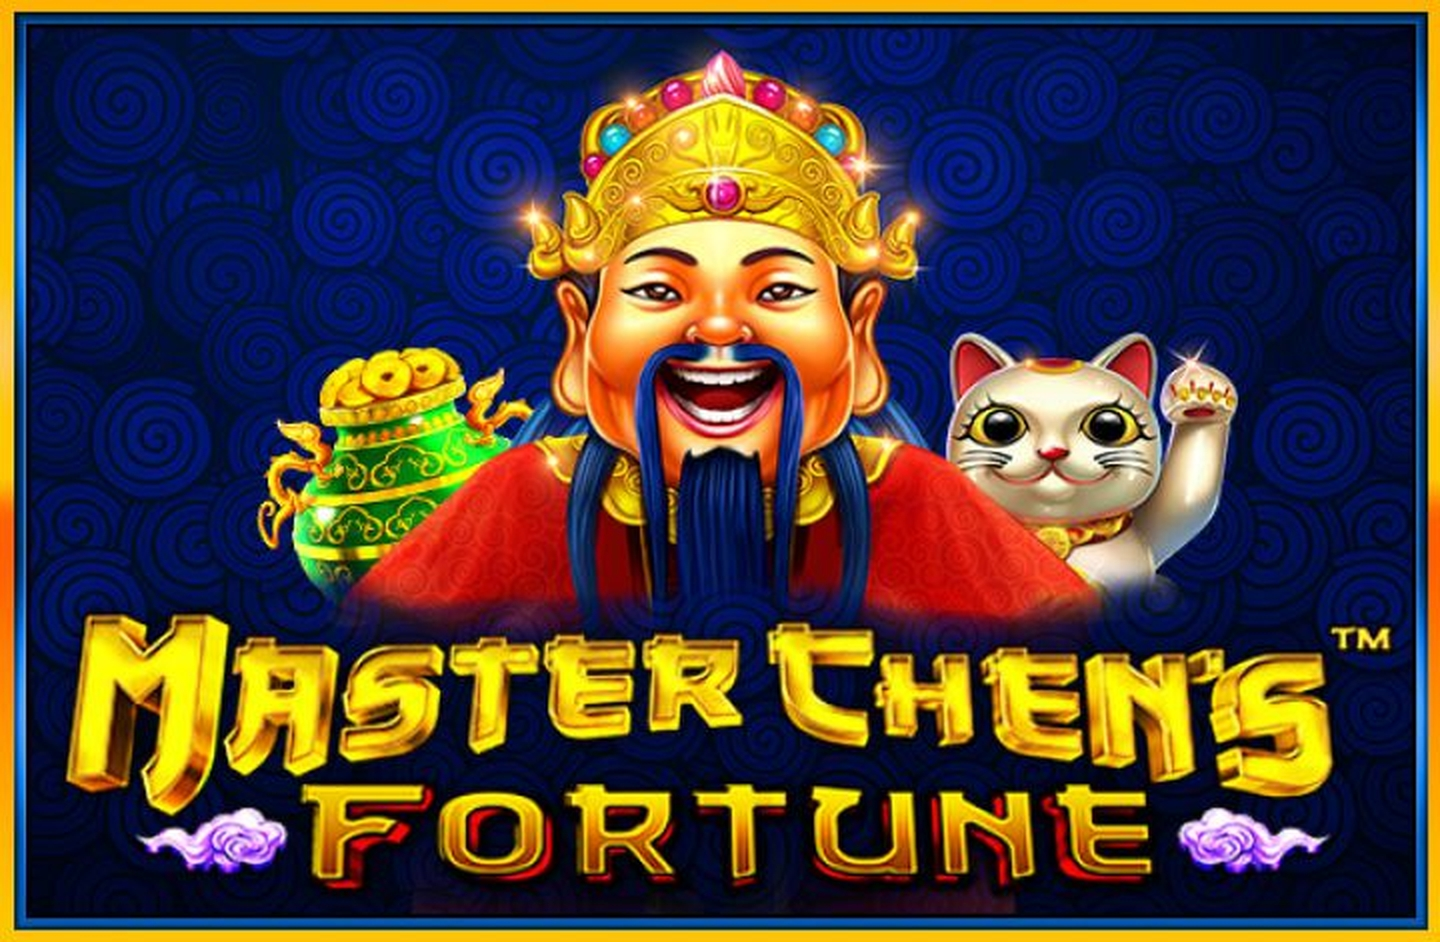 The Master Chen's Fortune Online Slot Demo Game by Pragmatic Play